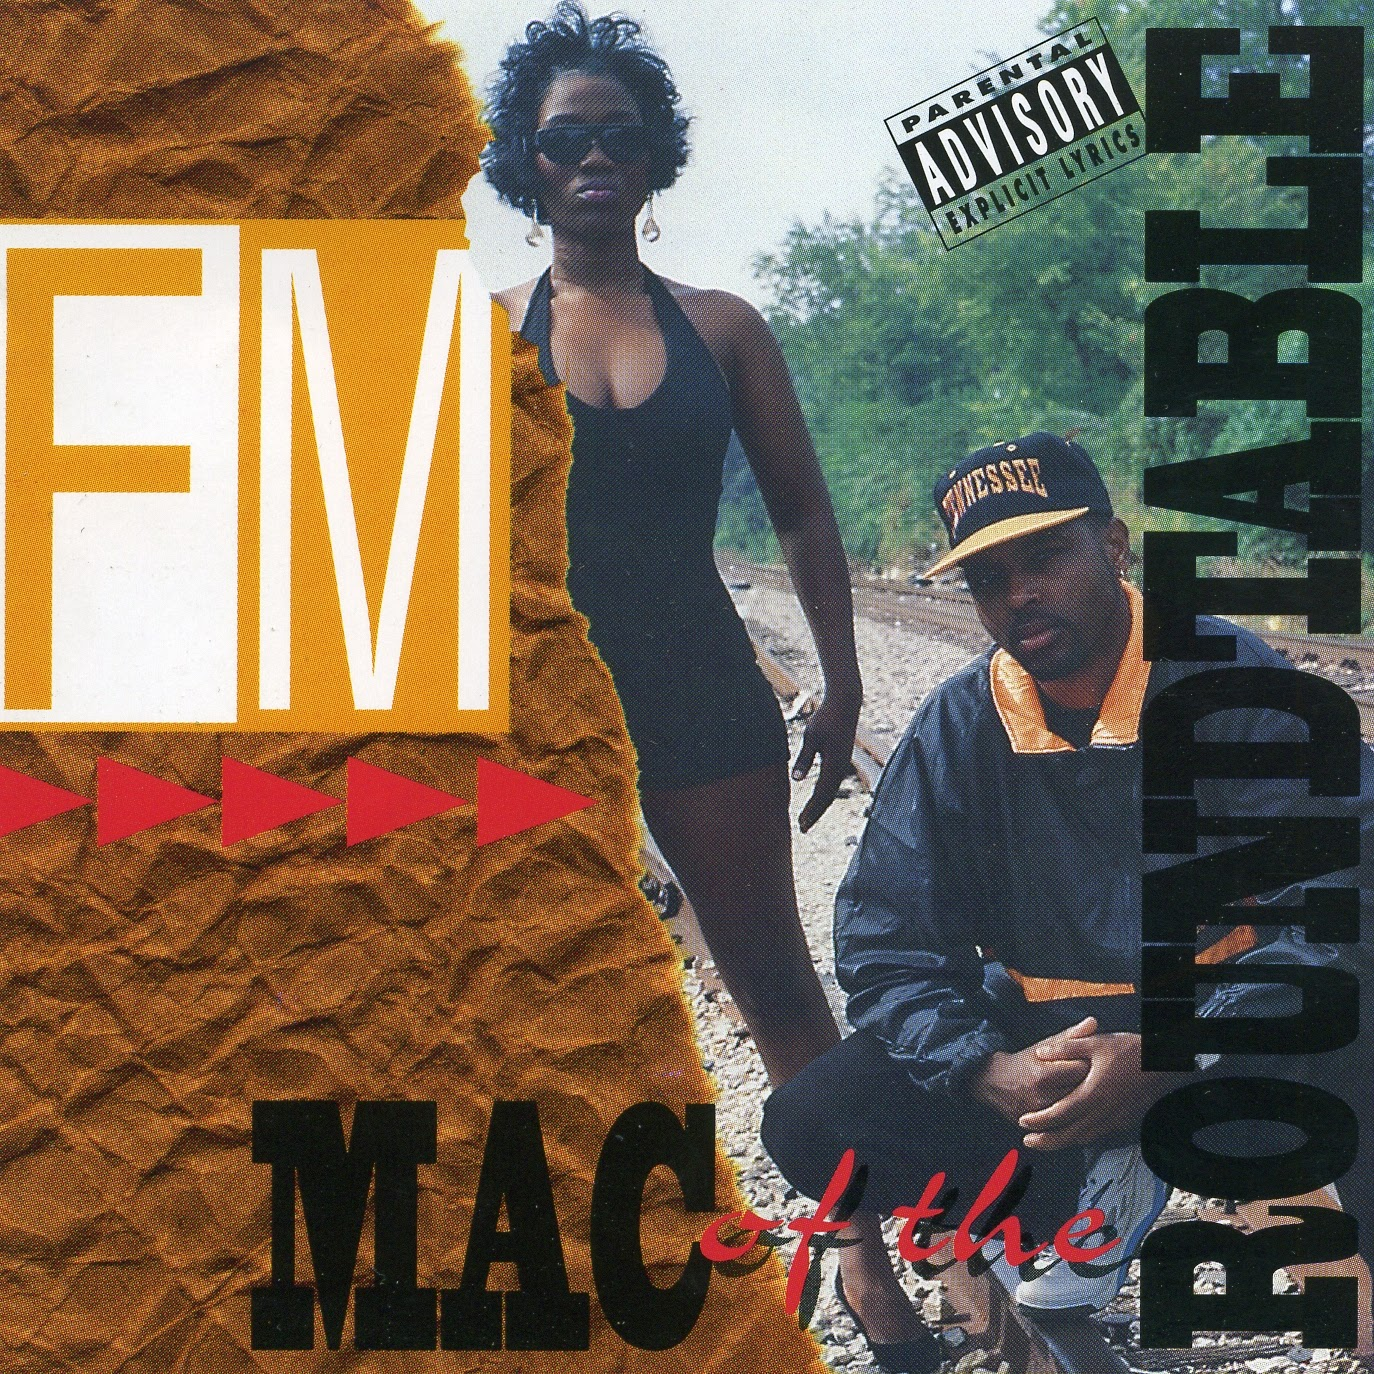 FM - Mac Of The Roundtable